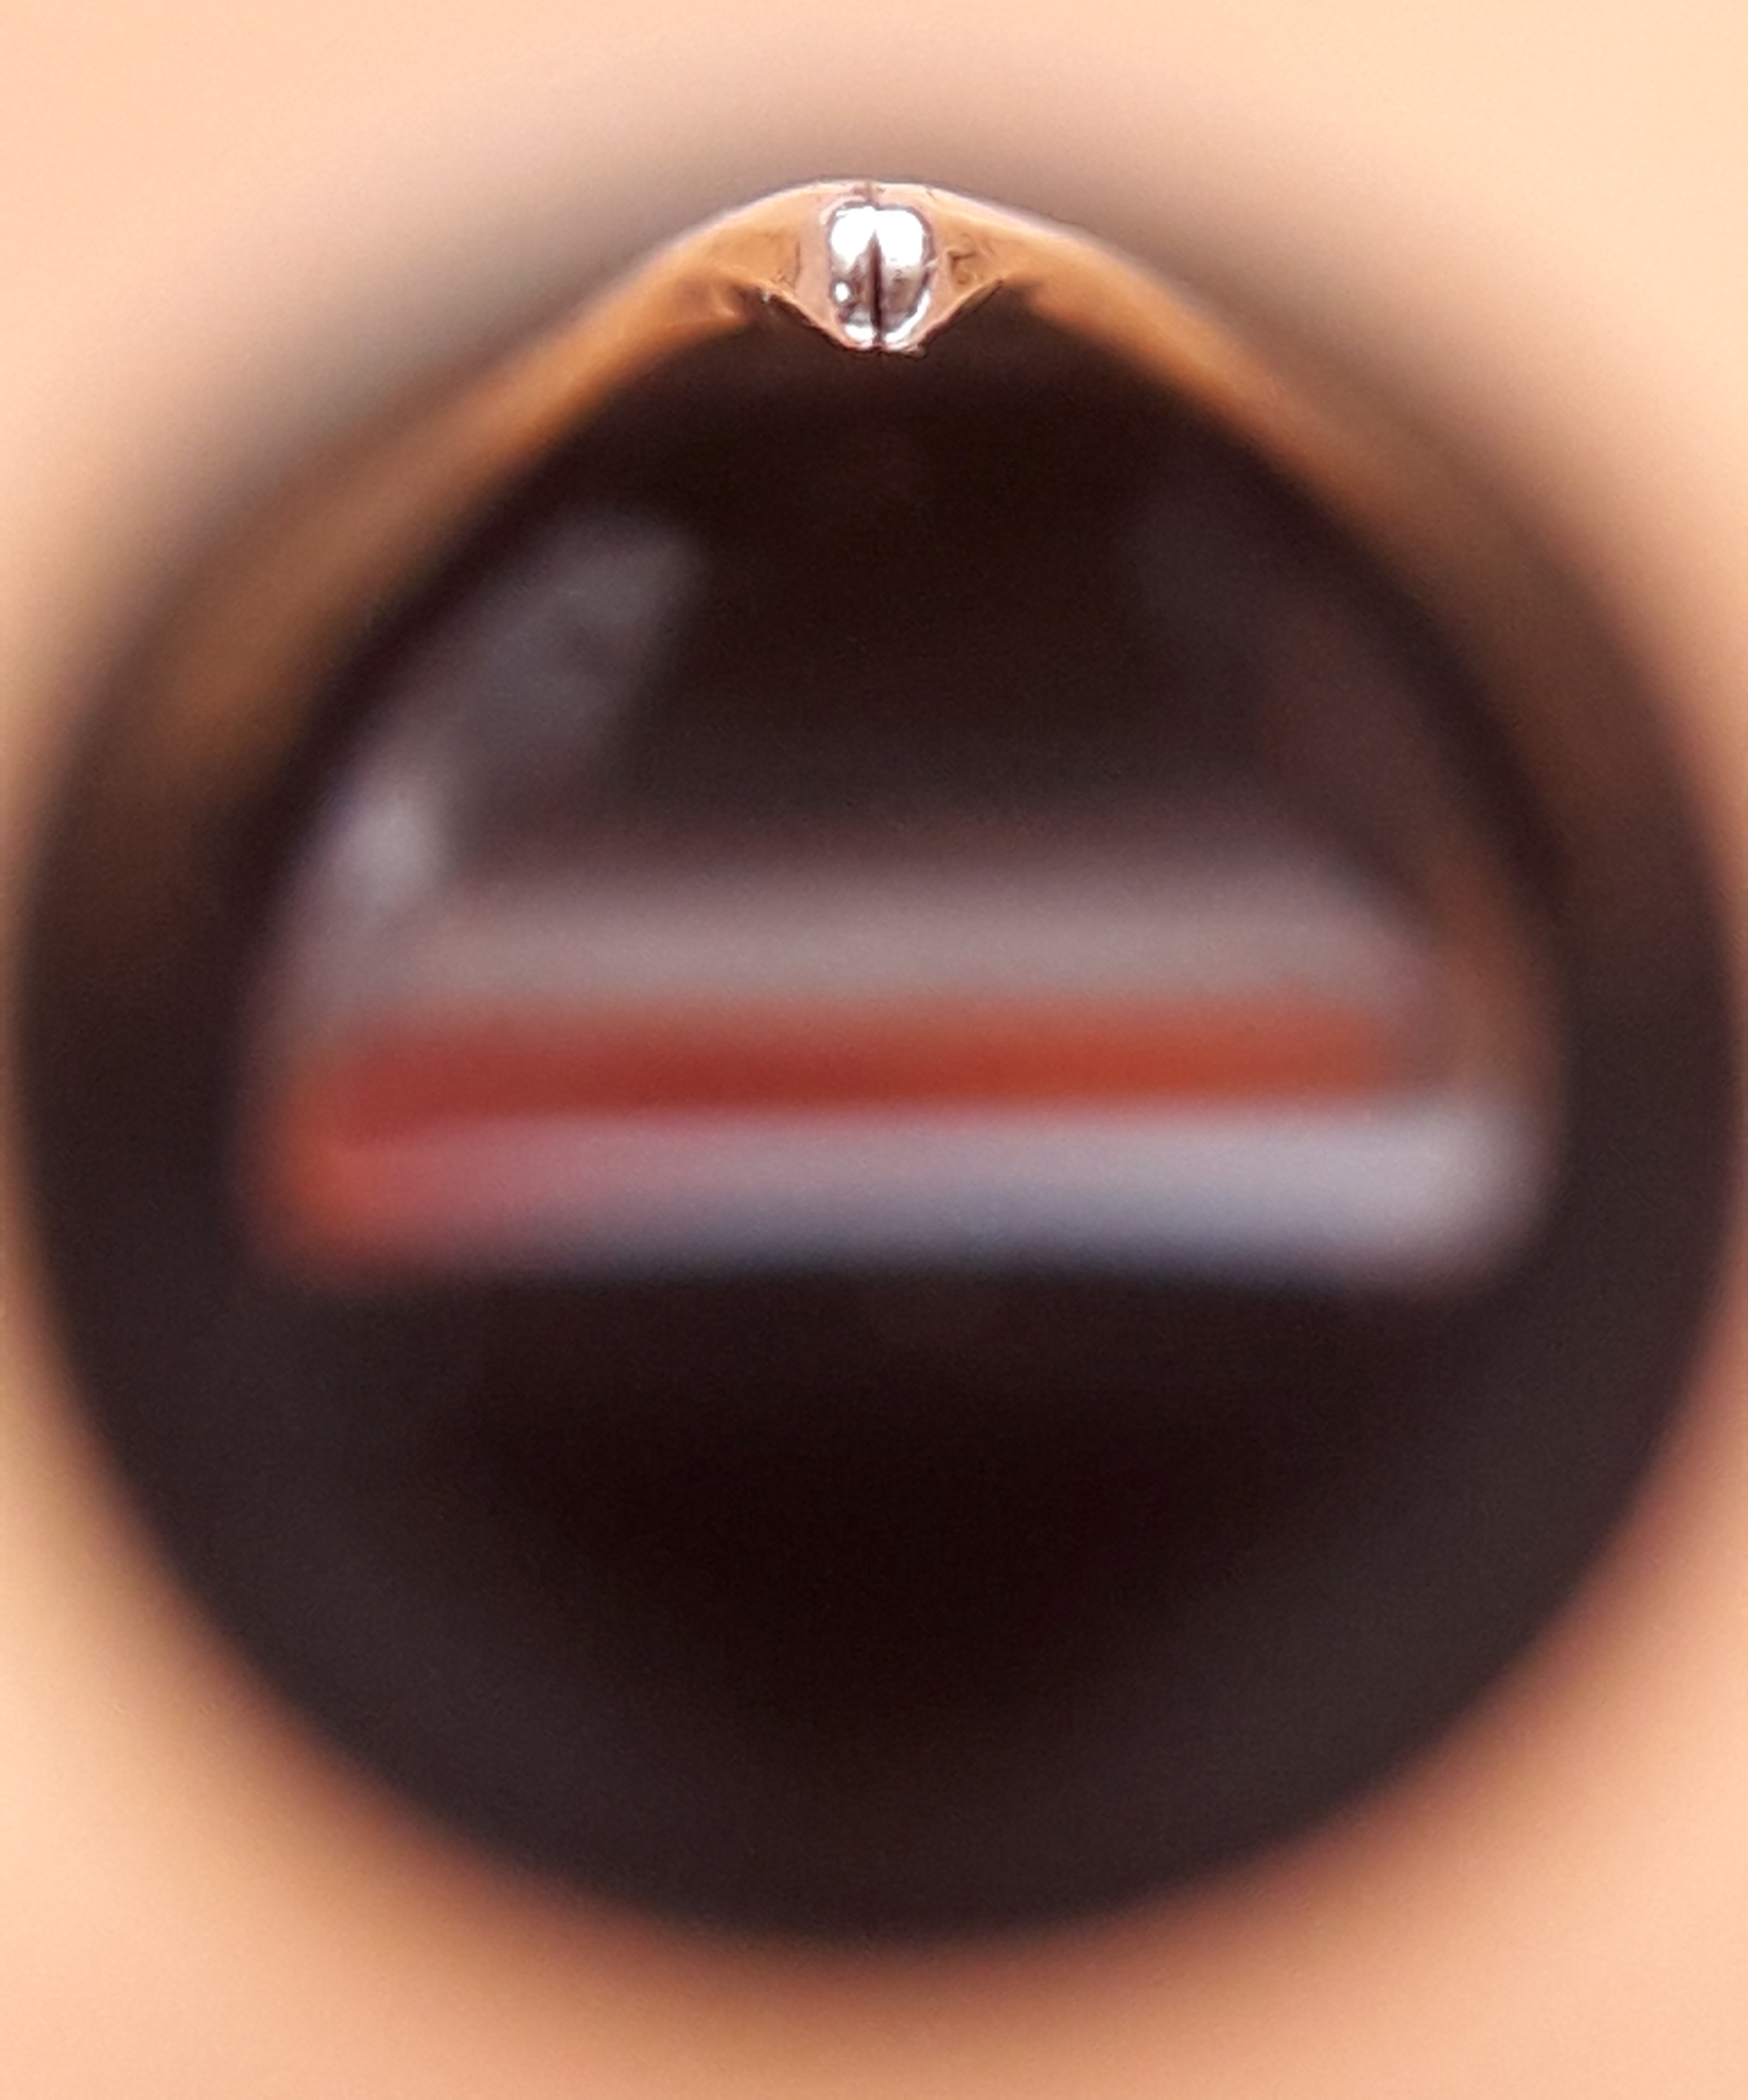 7. W42. nib point detail 2.jpg